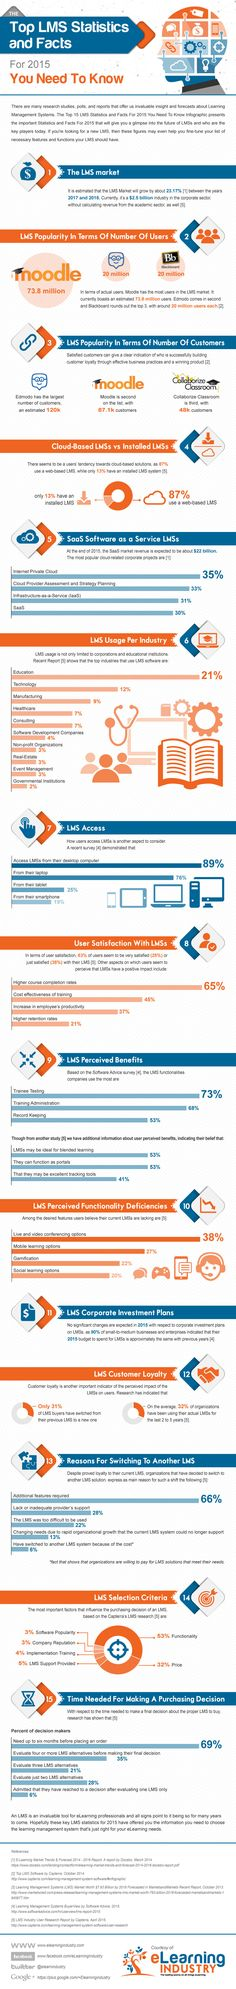 The Top 15 Learning Management System Stats and Facts For 2015 You Need To Know Infographic presents the Top LMS Stats and Facts For Elearning Industry, Computer Lessons, Curriculum Design, Learning Theory, Education Architecture, Student Success, Flipped Classroom, Teacher Education, Instructional Design